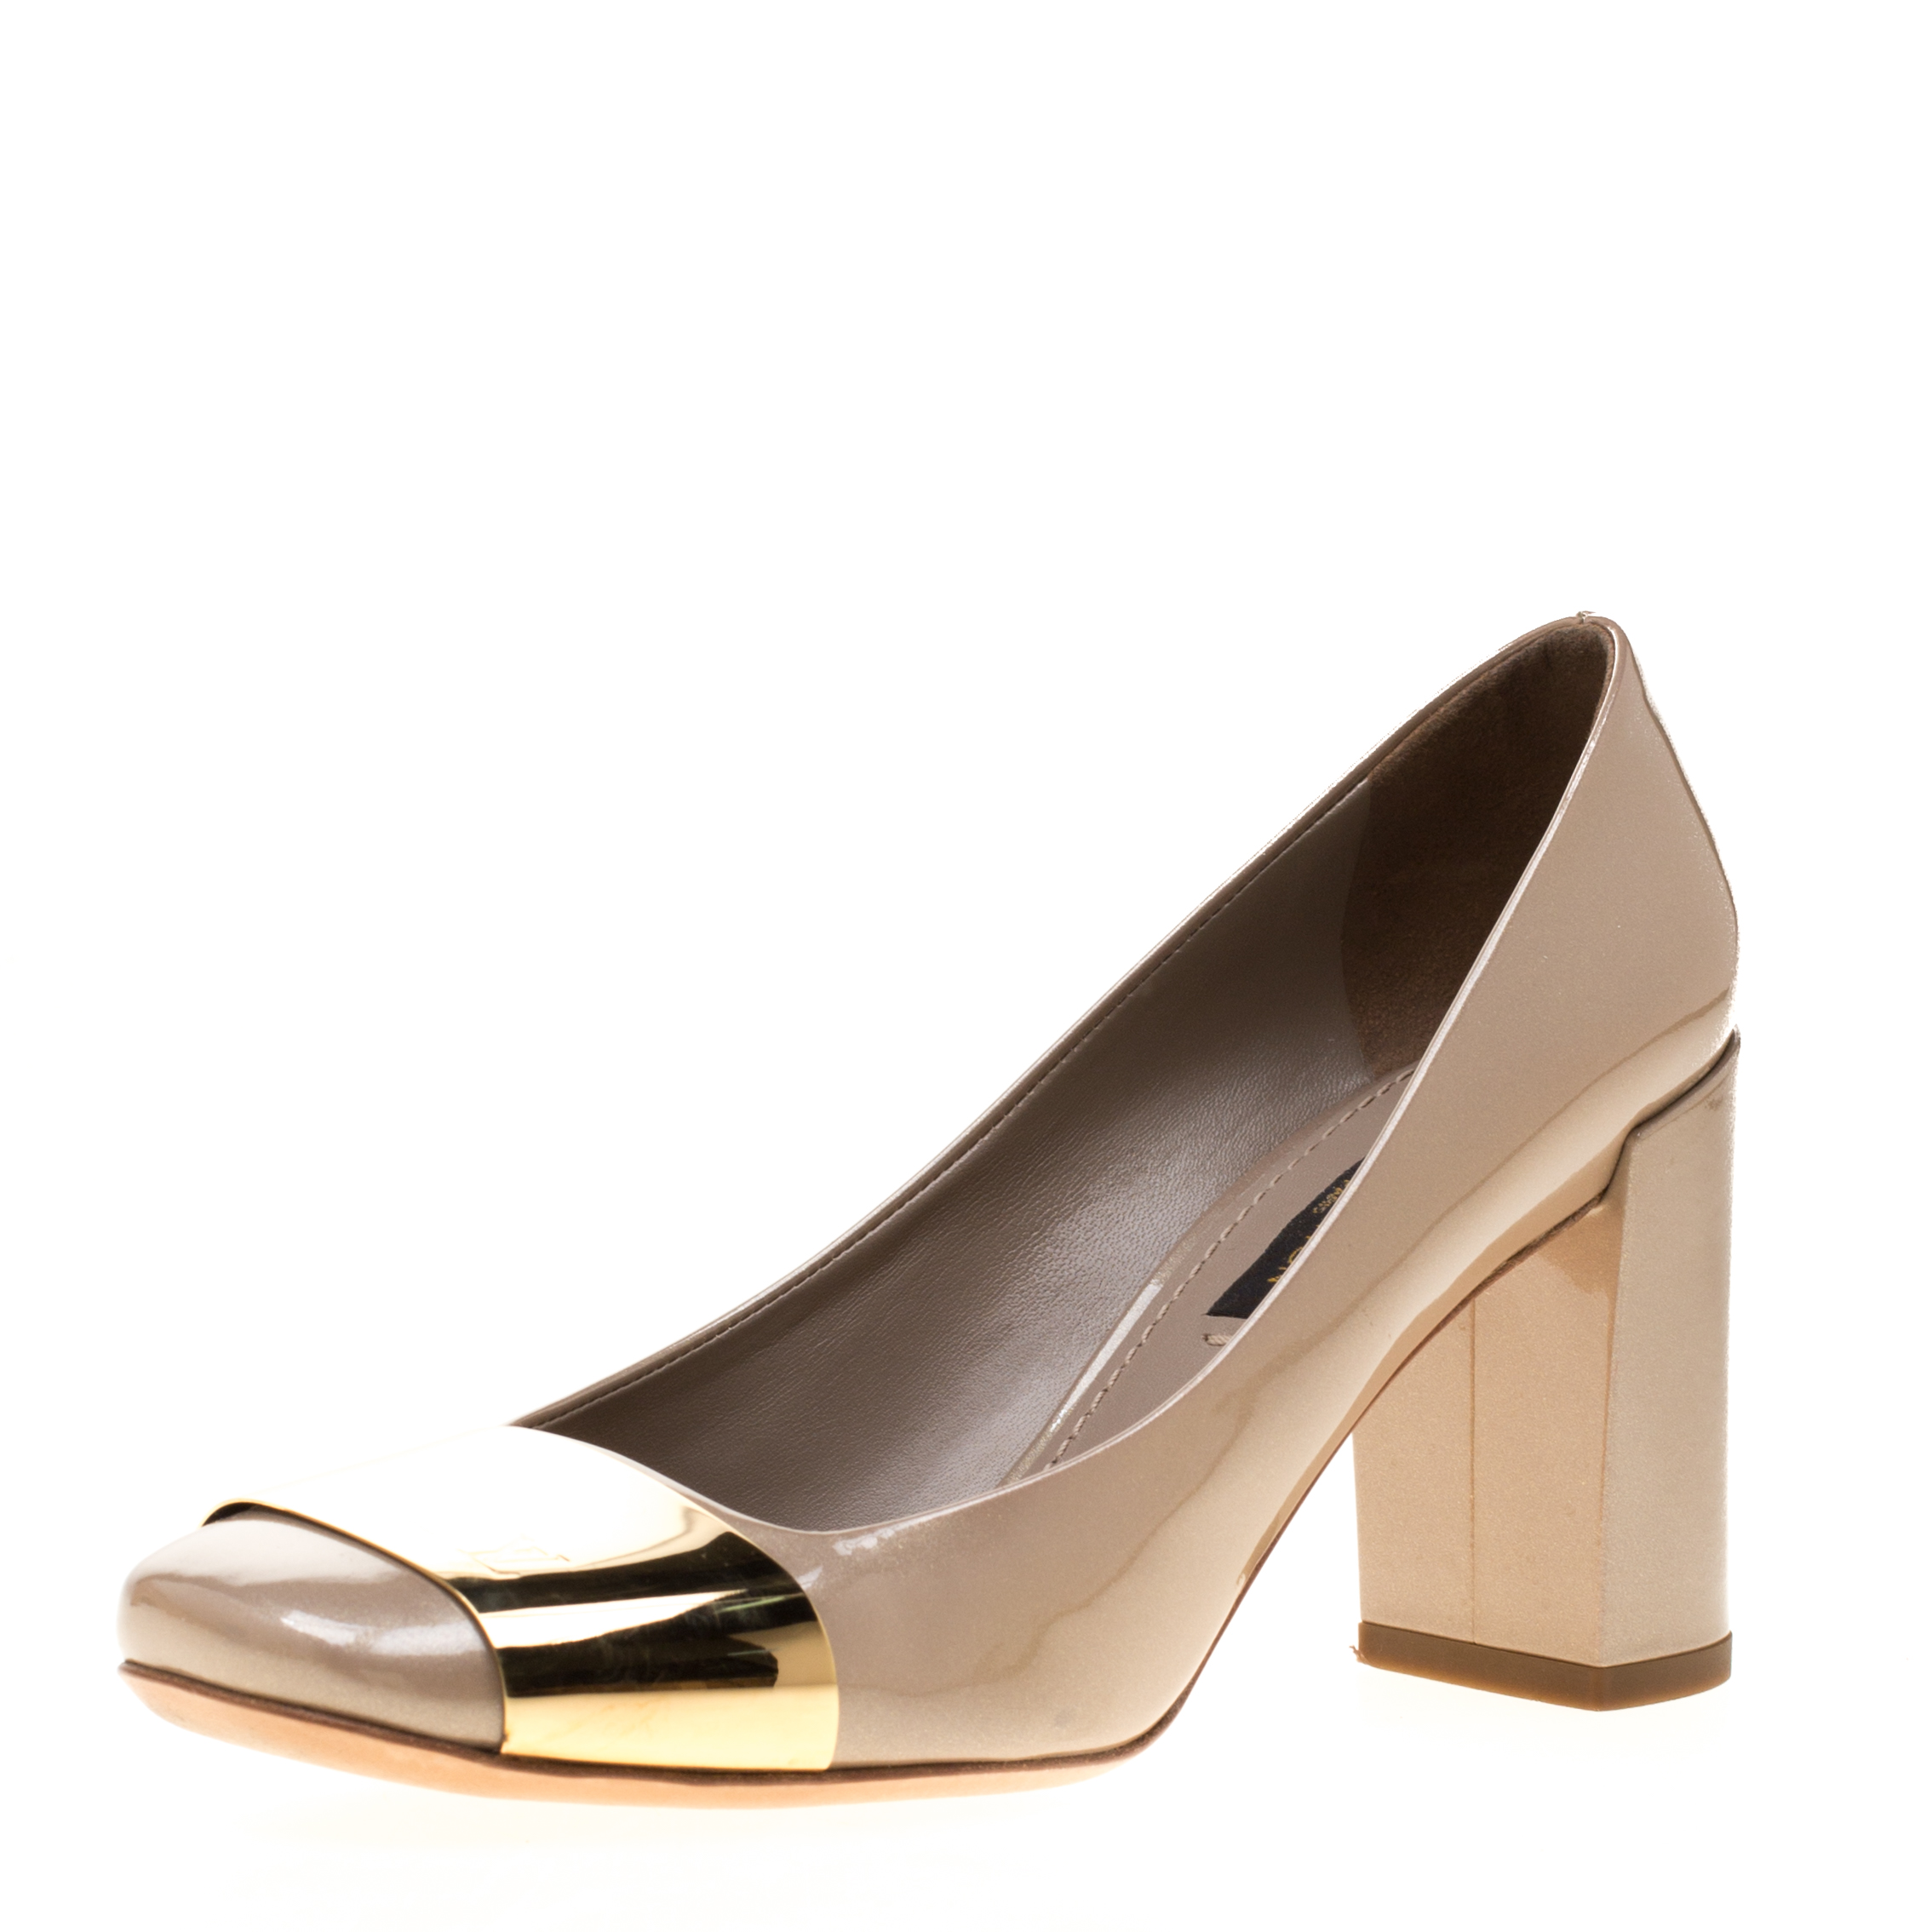 e2c014d987a1 Buy Louis Vuitton Beige Patent Leather Block Heel Pumps Size 35.5 ...